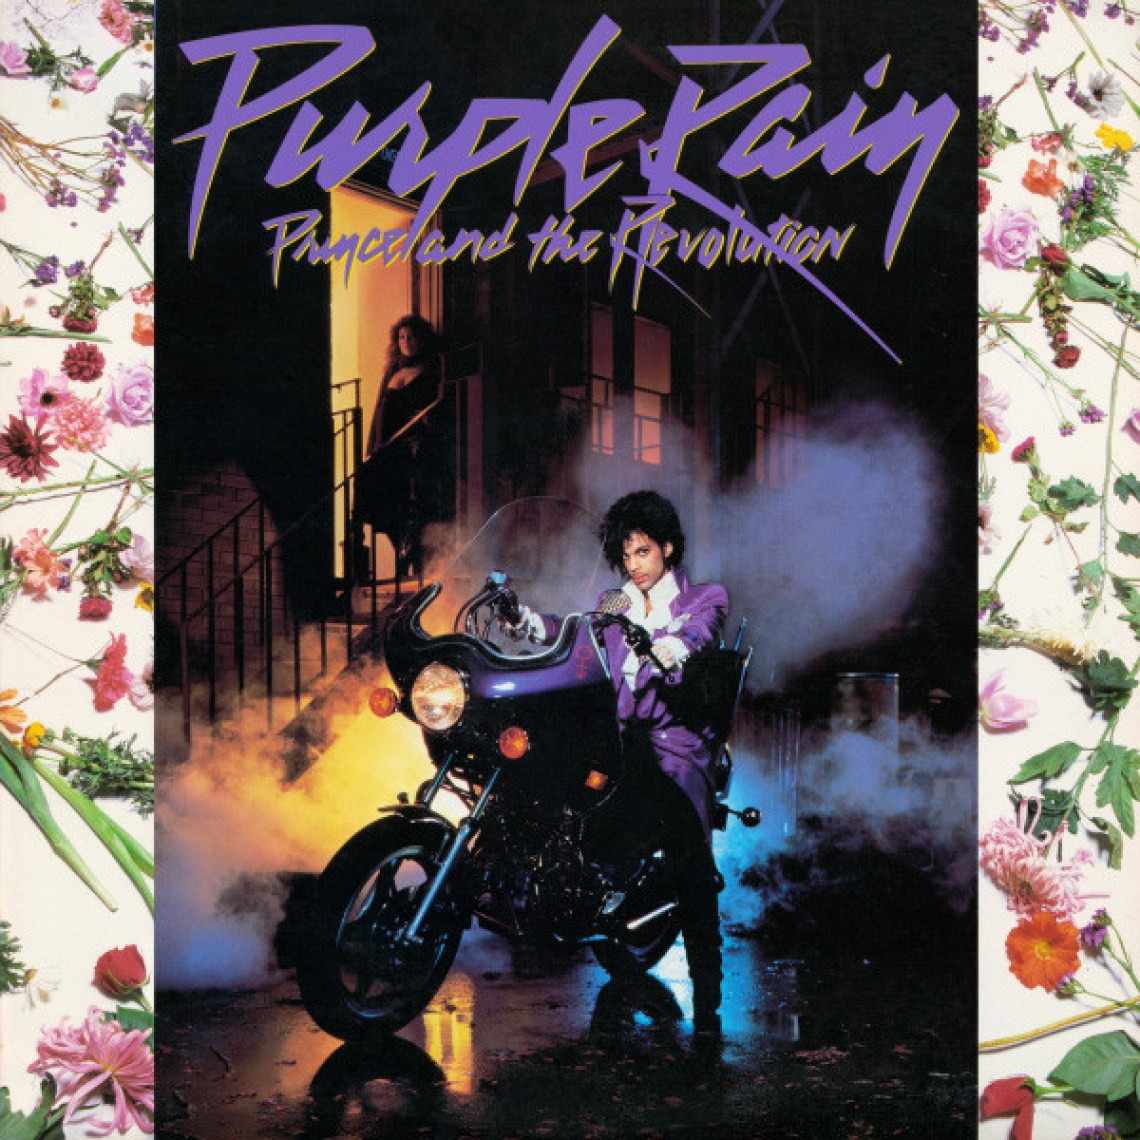 The Legend Slot: Prince - Purple Rain (1984)